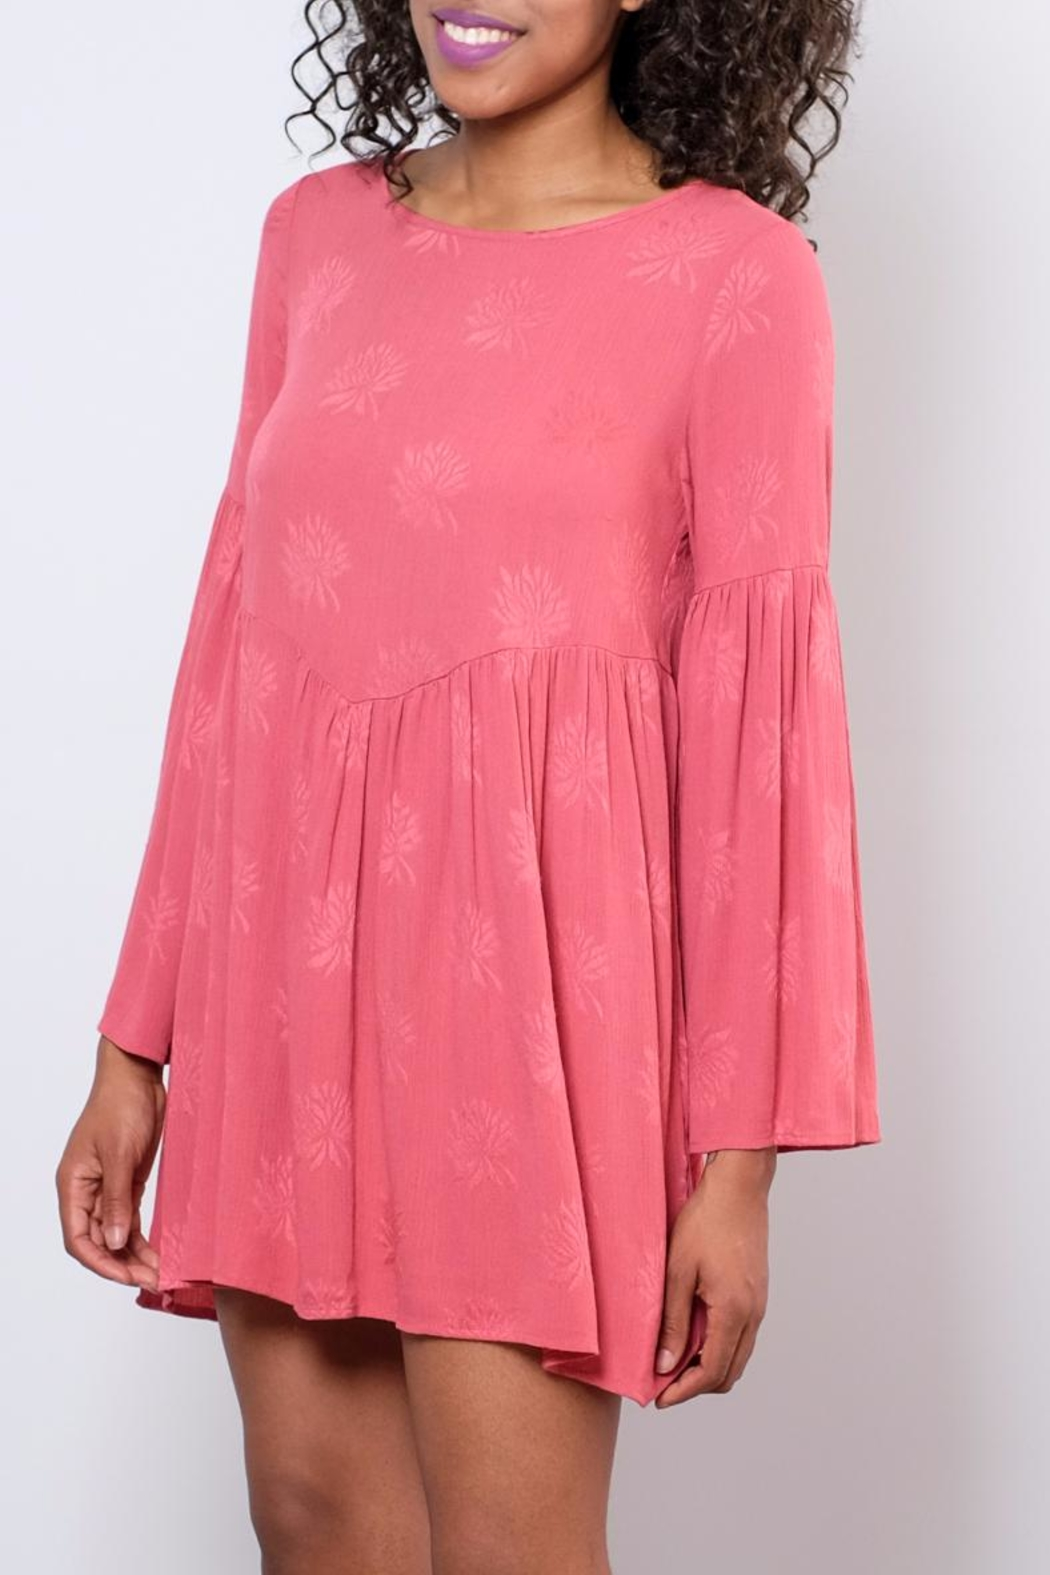 Audrey 3+1 Flare Sleeved Dress - Side Cropped Image